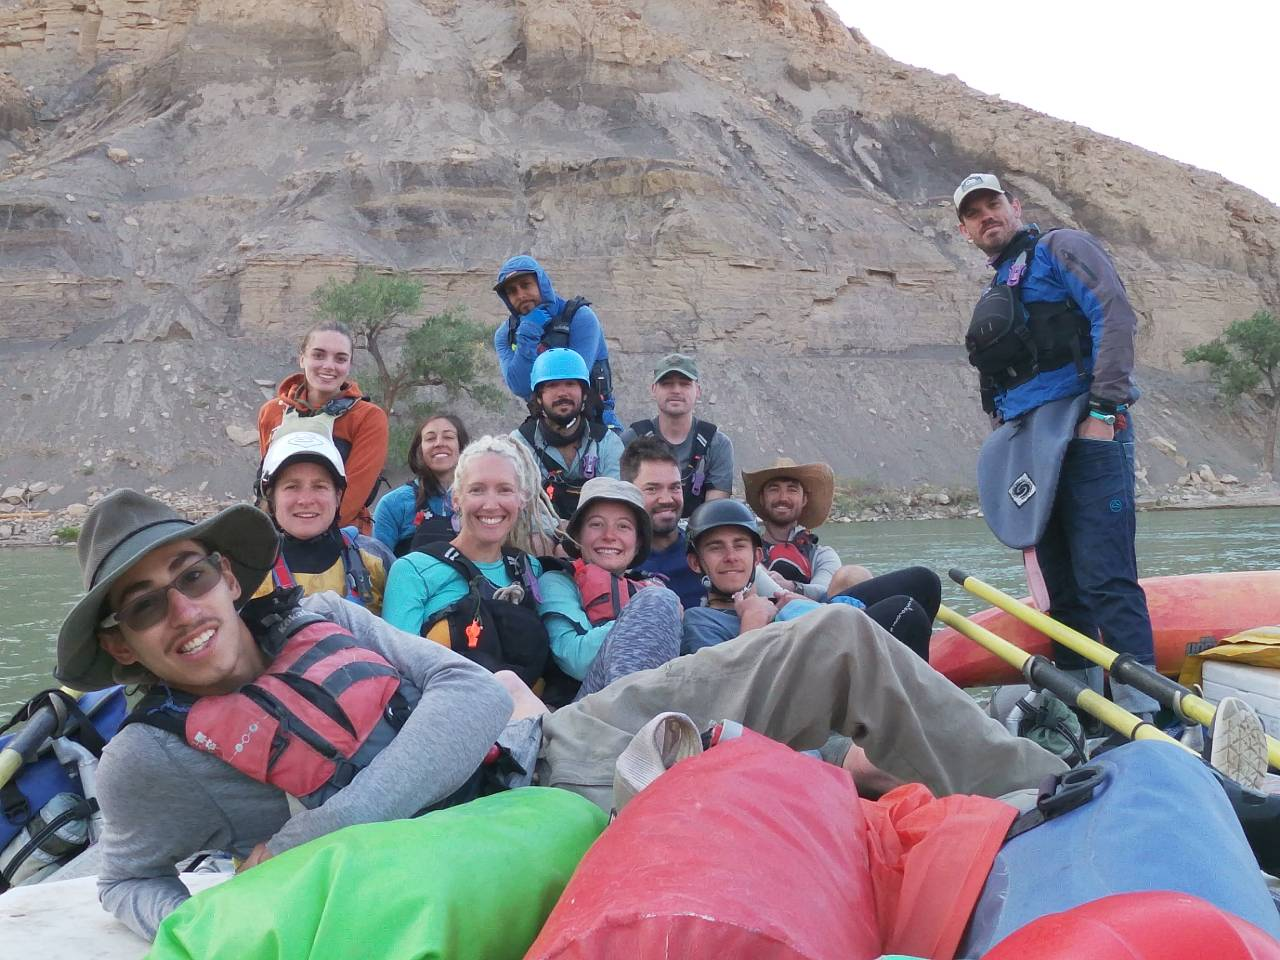 NOLS group smiles while resting on a river bank